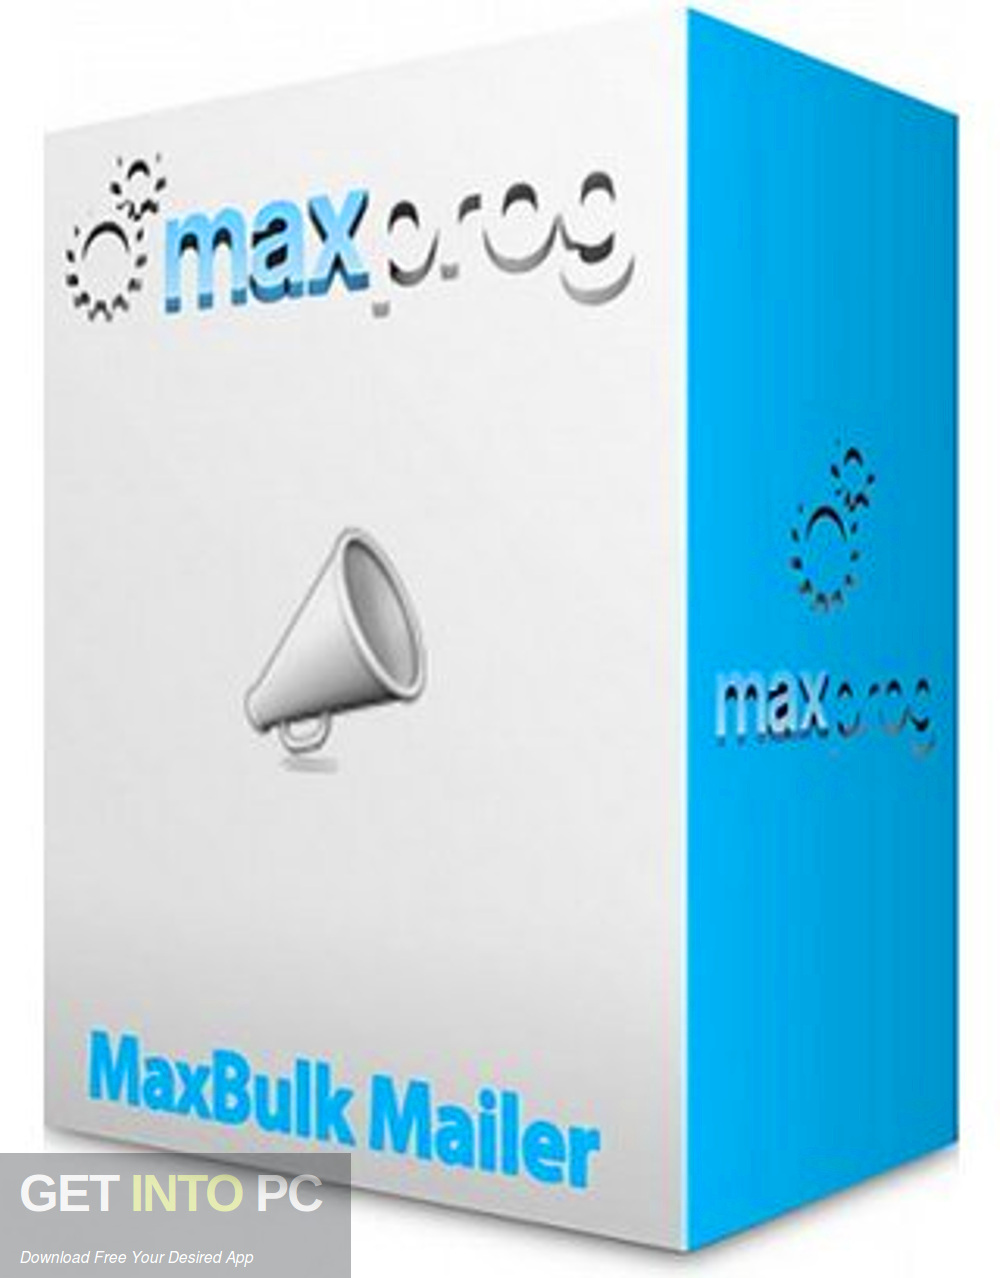 MaxBulk Mailer Pro Free Download-GetintoPC.com